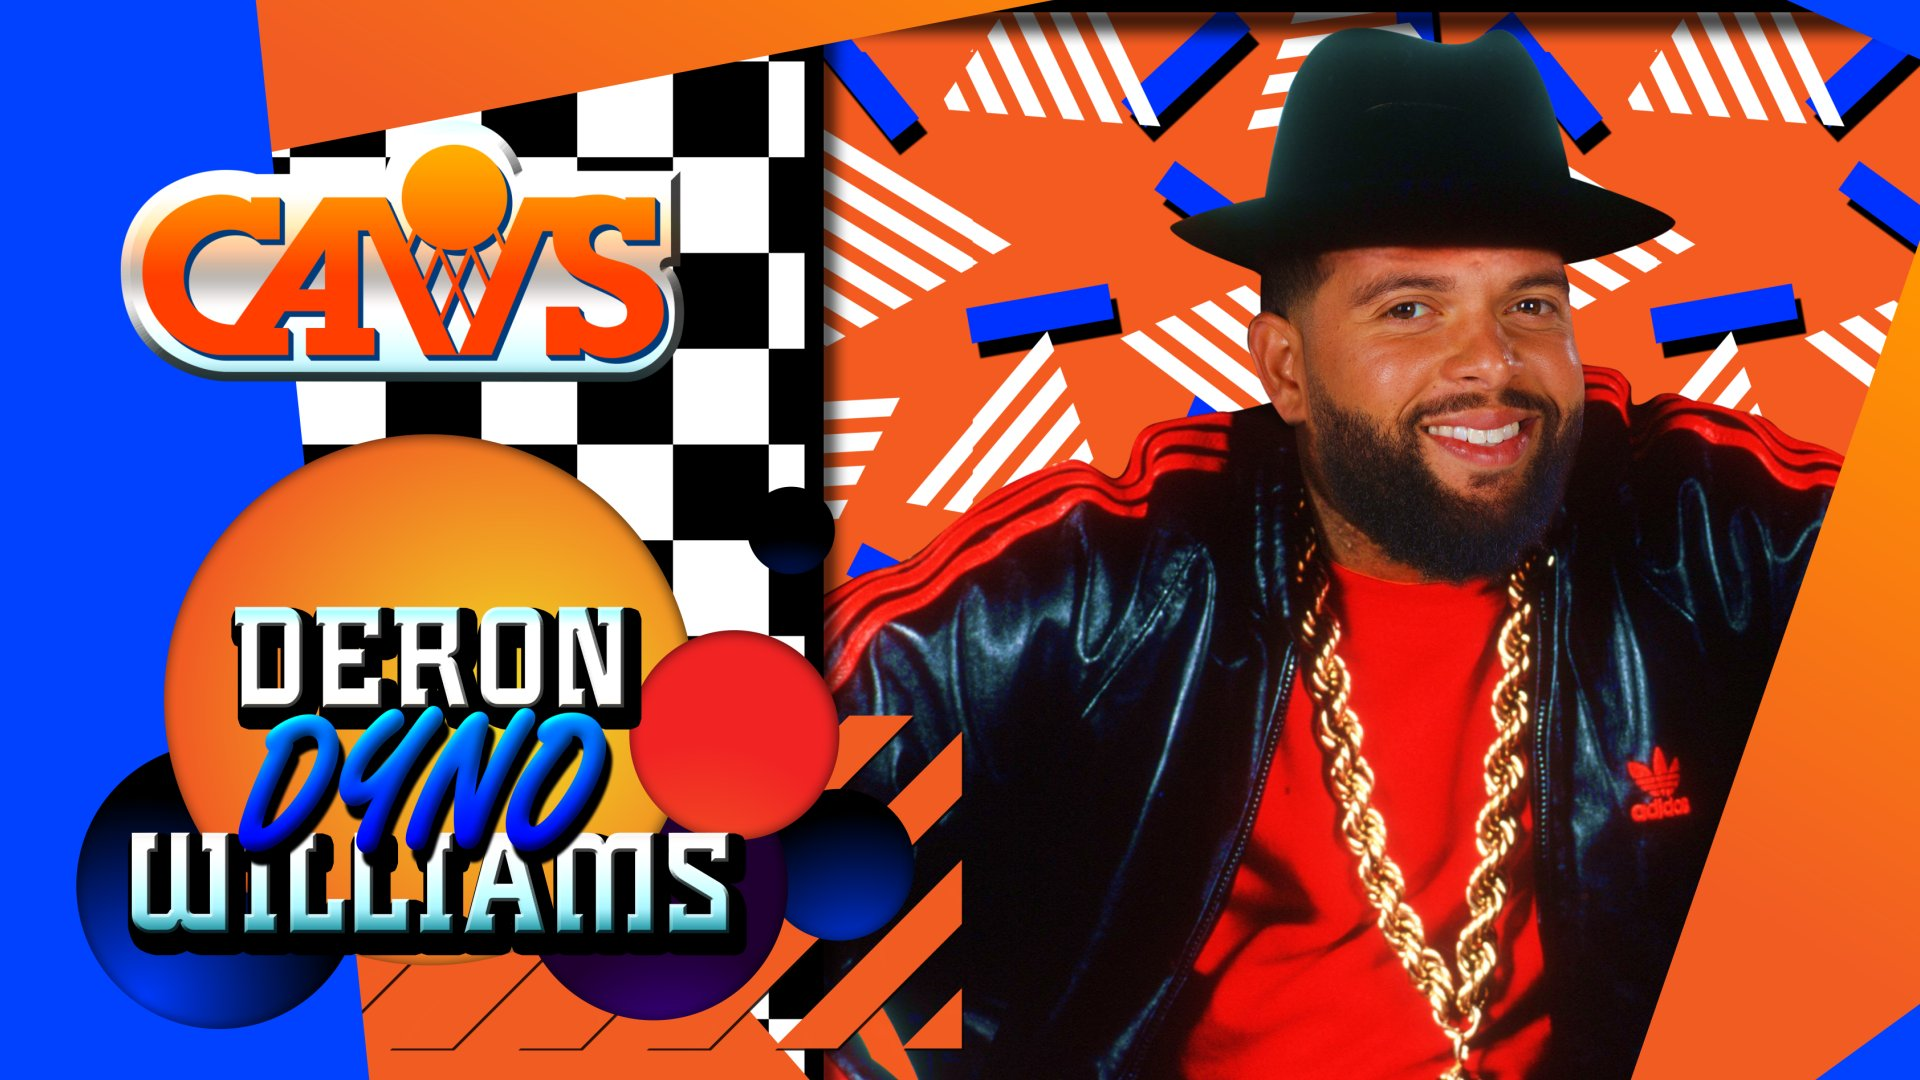 Dyno-mite #CavsPistons performance for @DeronWilliams with 13pts (6-6 FG) & 3 dimes. �� https://t.co/eNhq0aAvO7